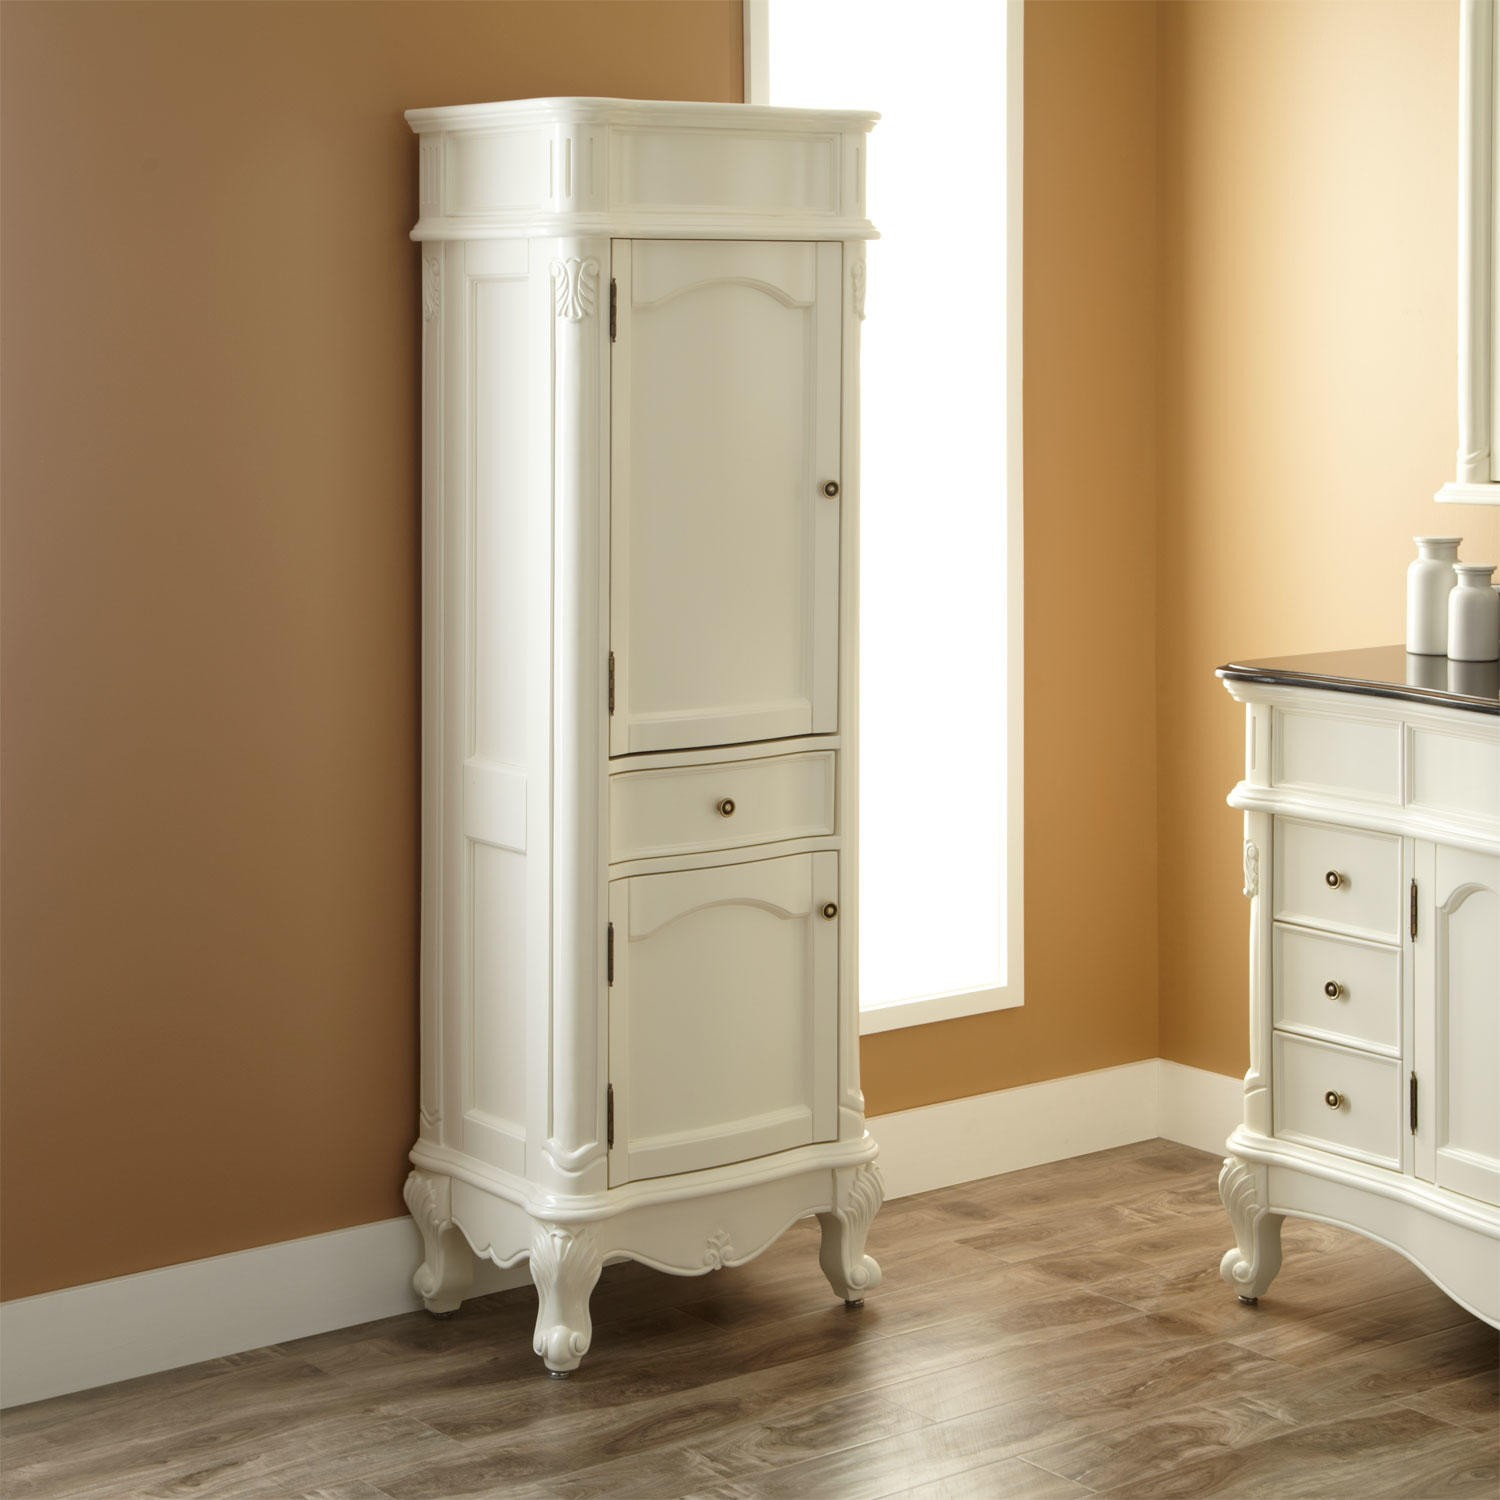 Beau Classic Design Of White Free Standing Linen Closet On Hardwood Floor